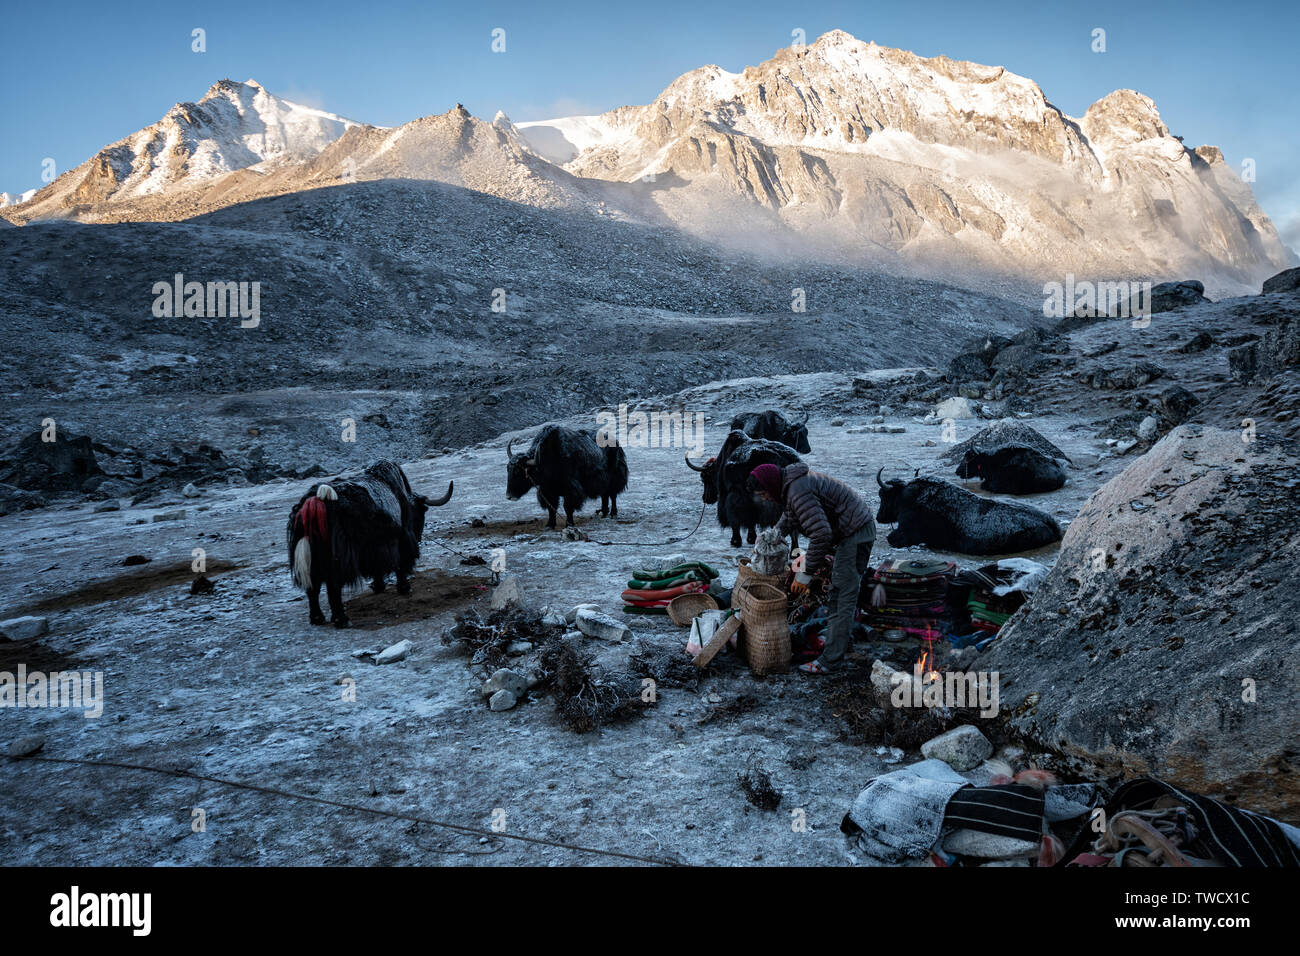 The day rises at the cold camp of Jichu Dramo, Wangdue Phodrang district, Snowman Trek, Bhutan Stock Photo